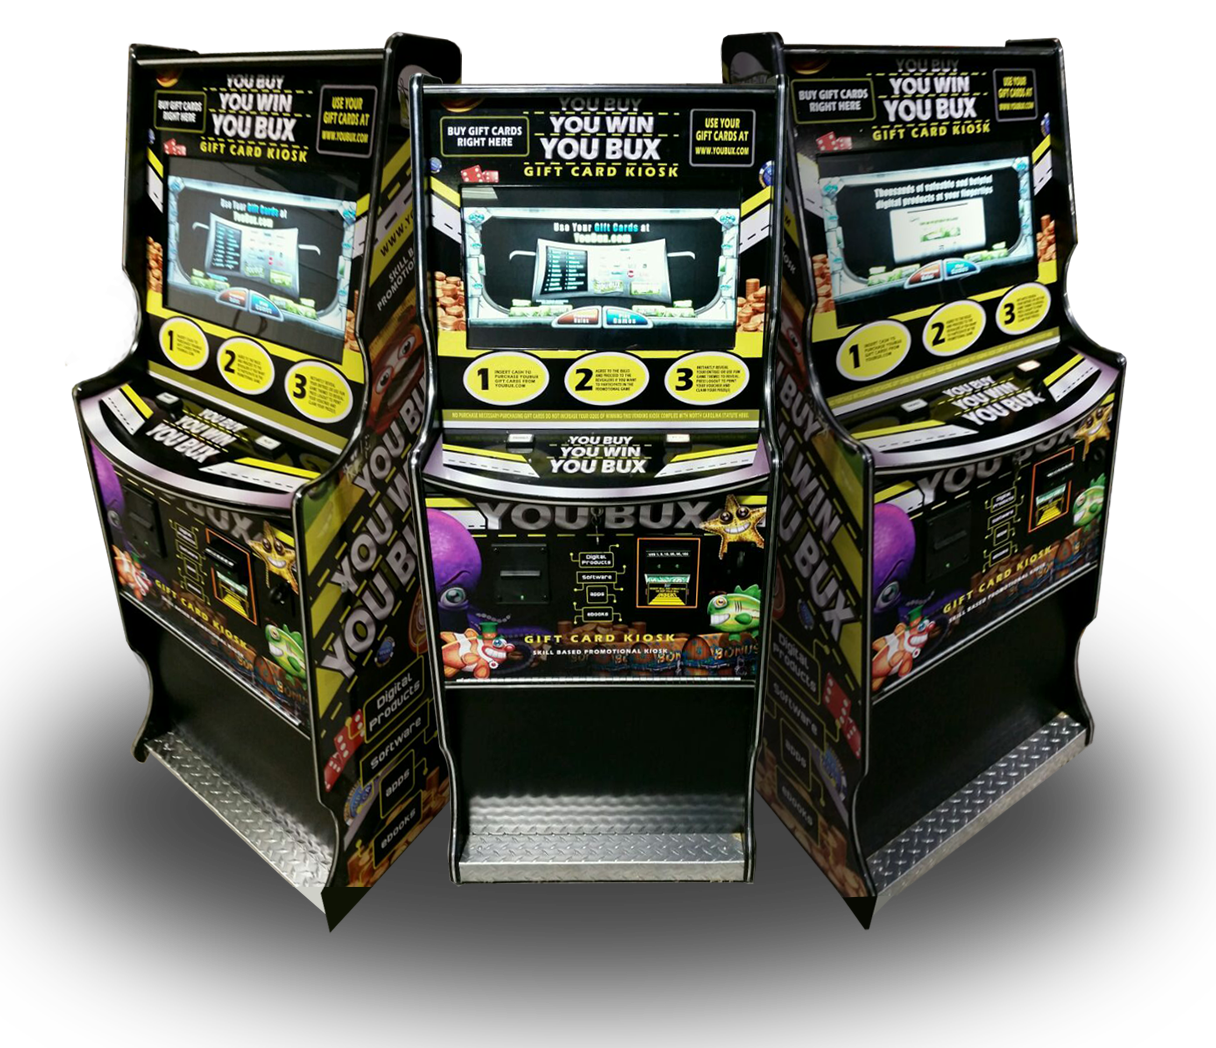 Youbux Gift Card Kiosks With Sweepstakes Skill Nudge Games